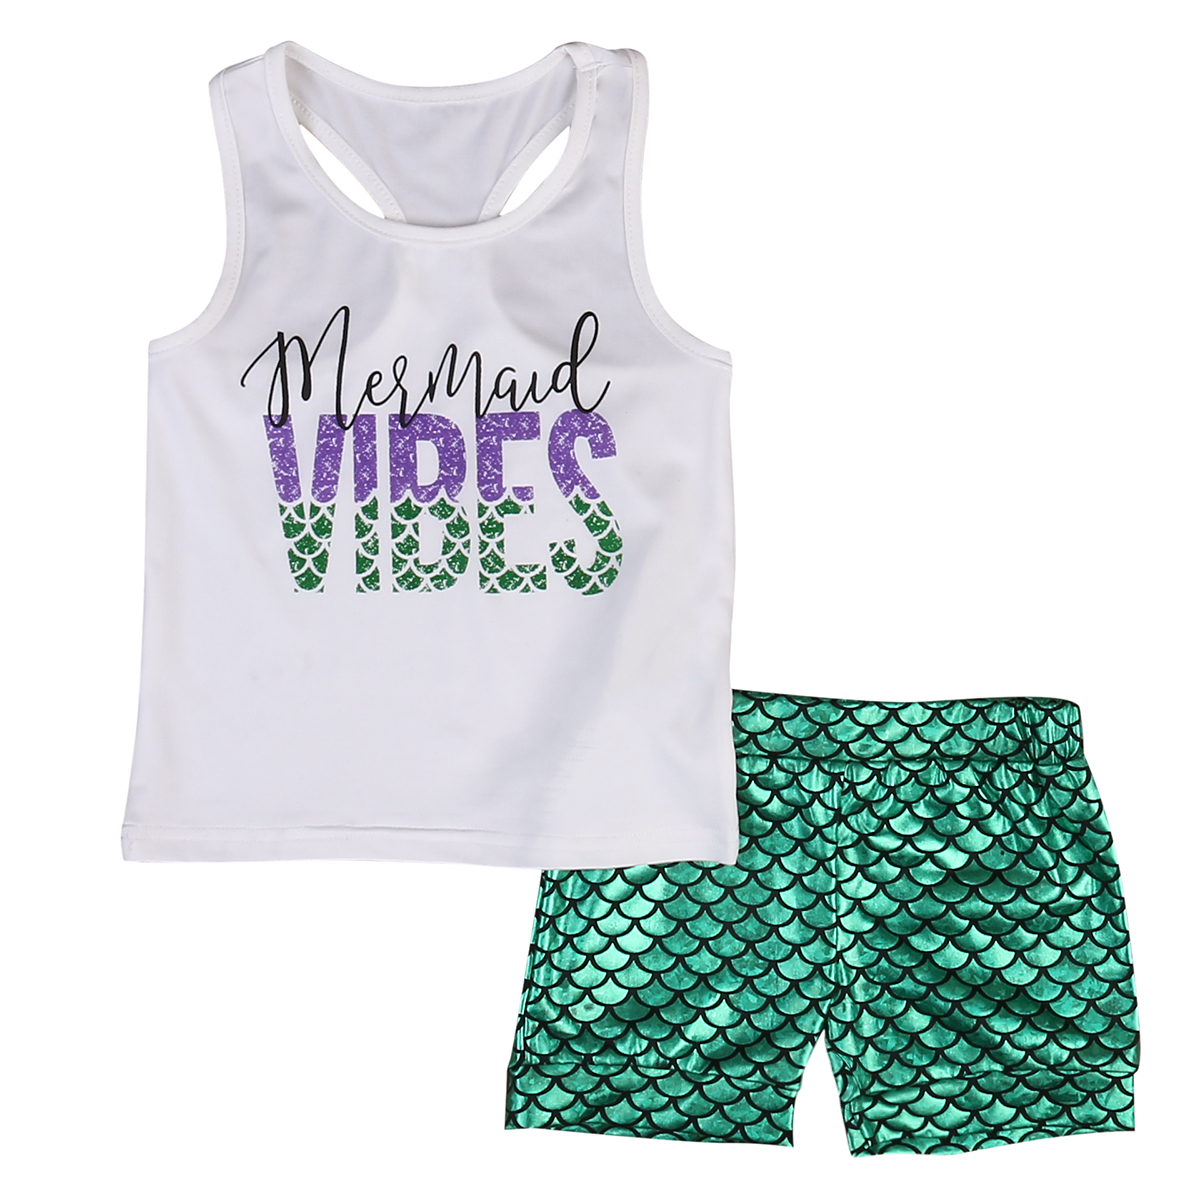 2pcs Newborn Infant Baby Kids Summer Outfits Babies Girls Kids Letter VIBES Vest Tops+print Mermaid short pants Outfit Sets майка print bar good vibes